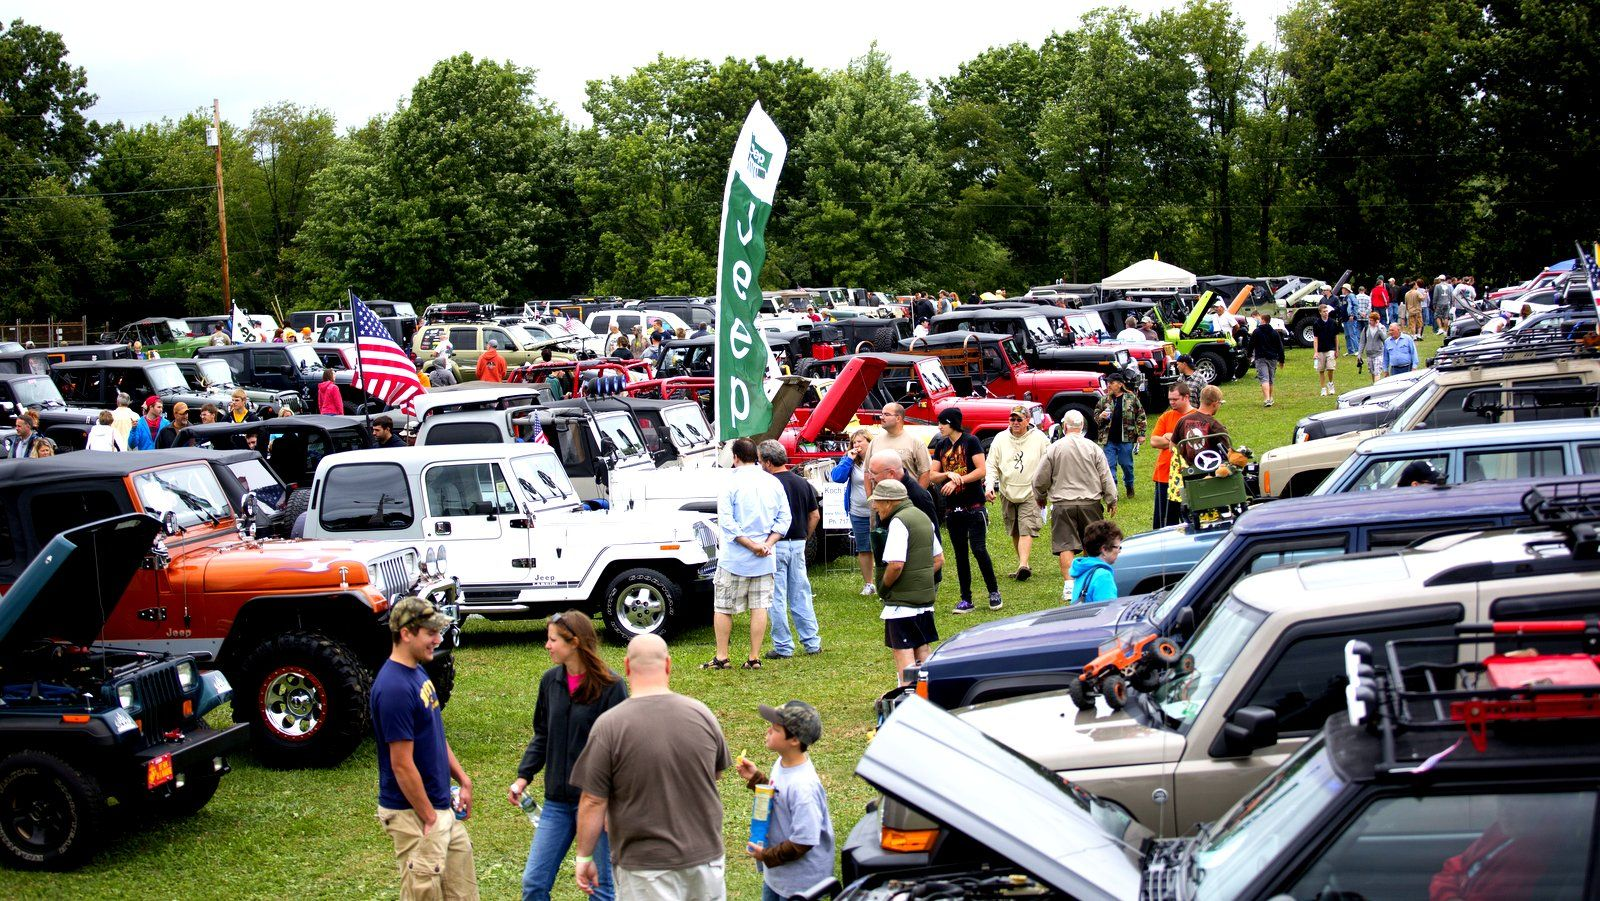 The Bantam Jeep Heritage Festival Is A Tribute Event For The History Of The Jeep The People Who Created It And Its Birthplace Butler The Main Eve Bantam Jeep